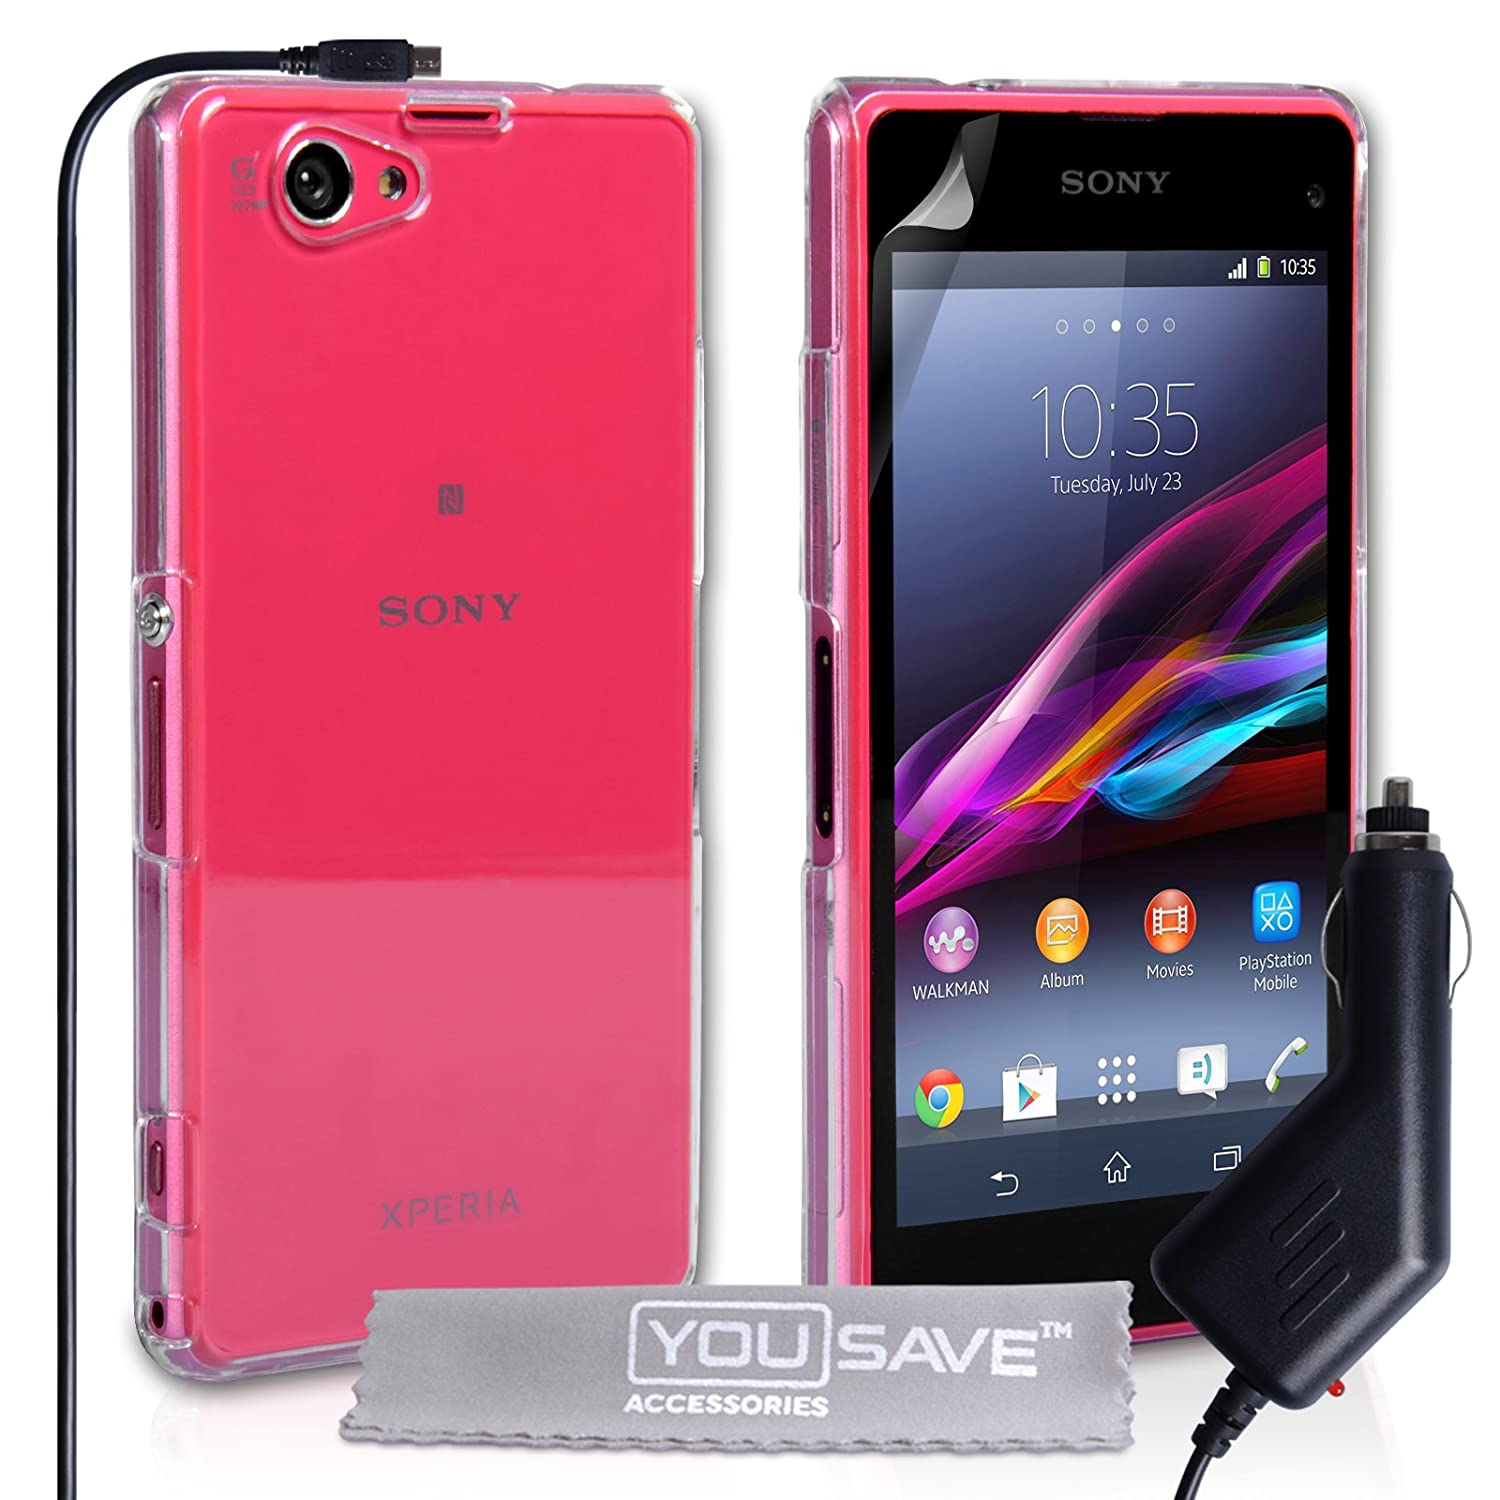 Yousave Accessories® Sony Xperia Z1 Compact Caso ...